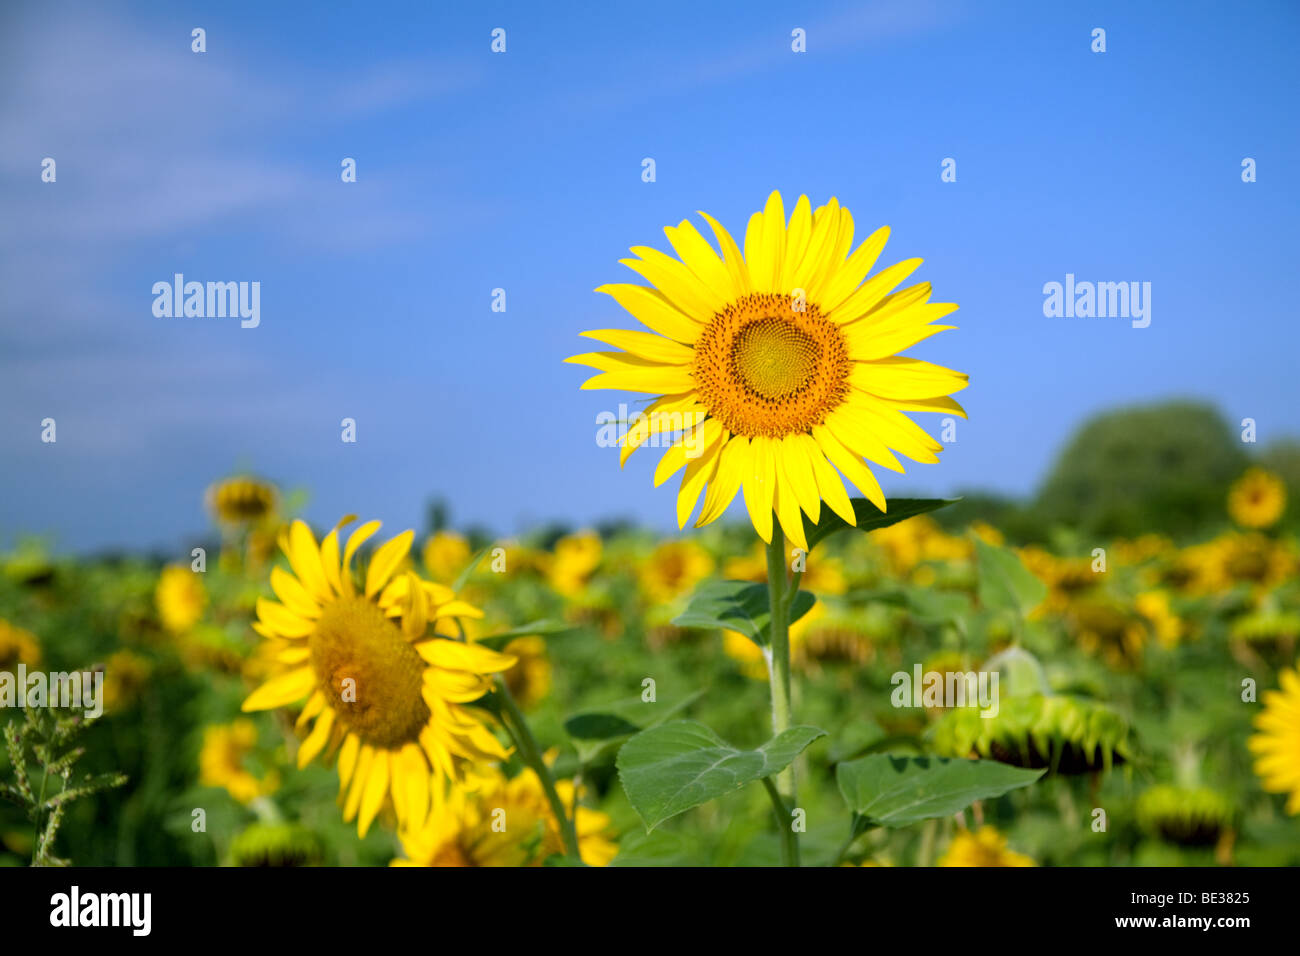 One sunflower in a field against a blue sky - Stock Image